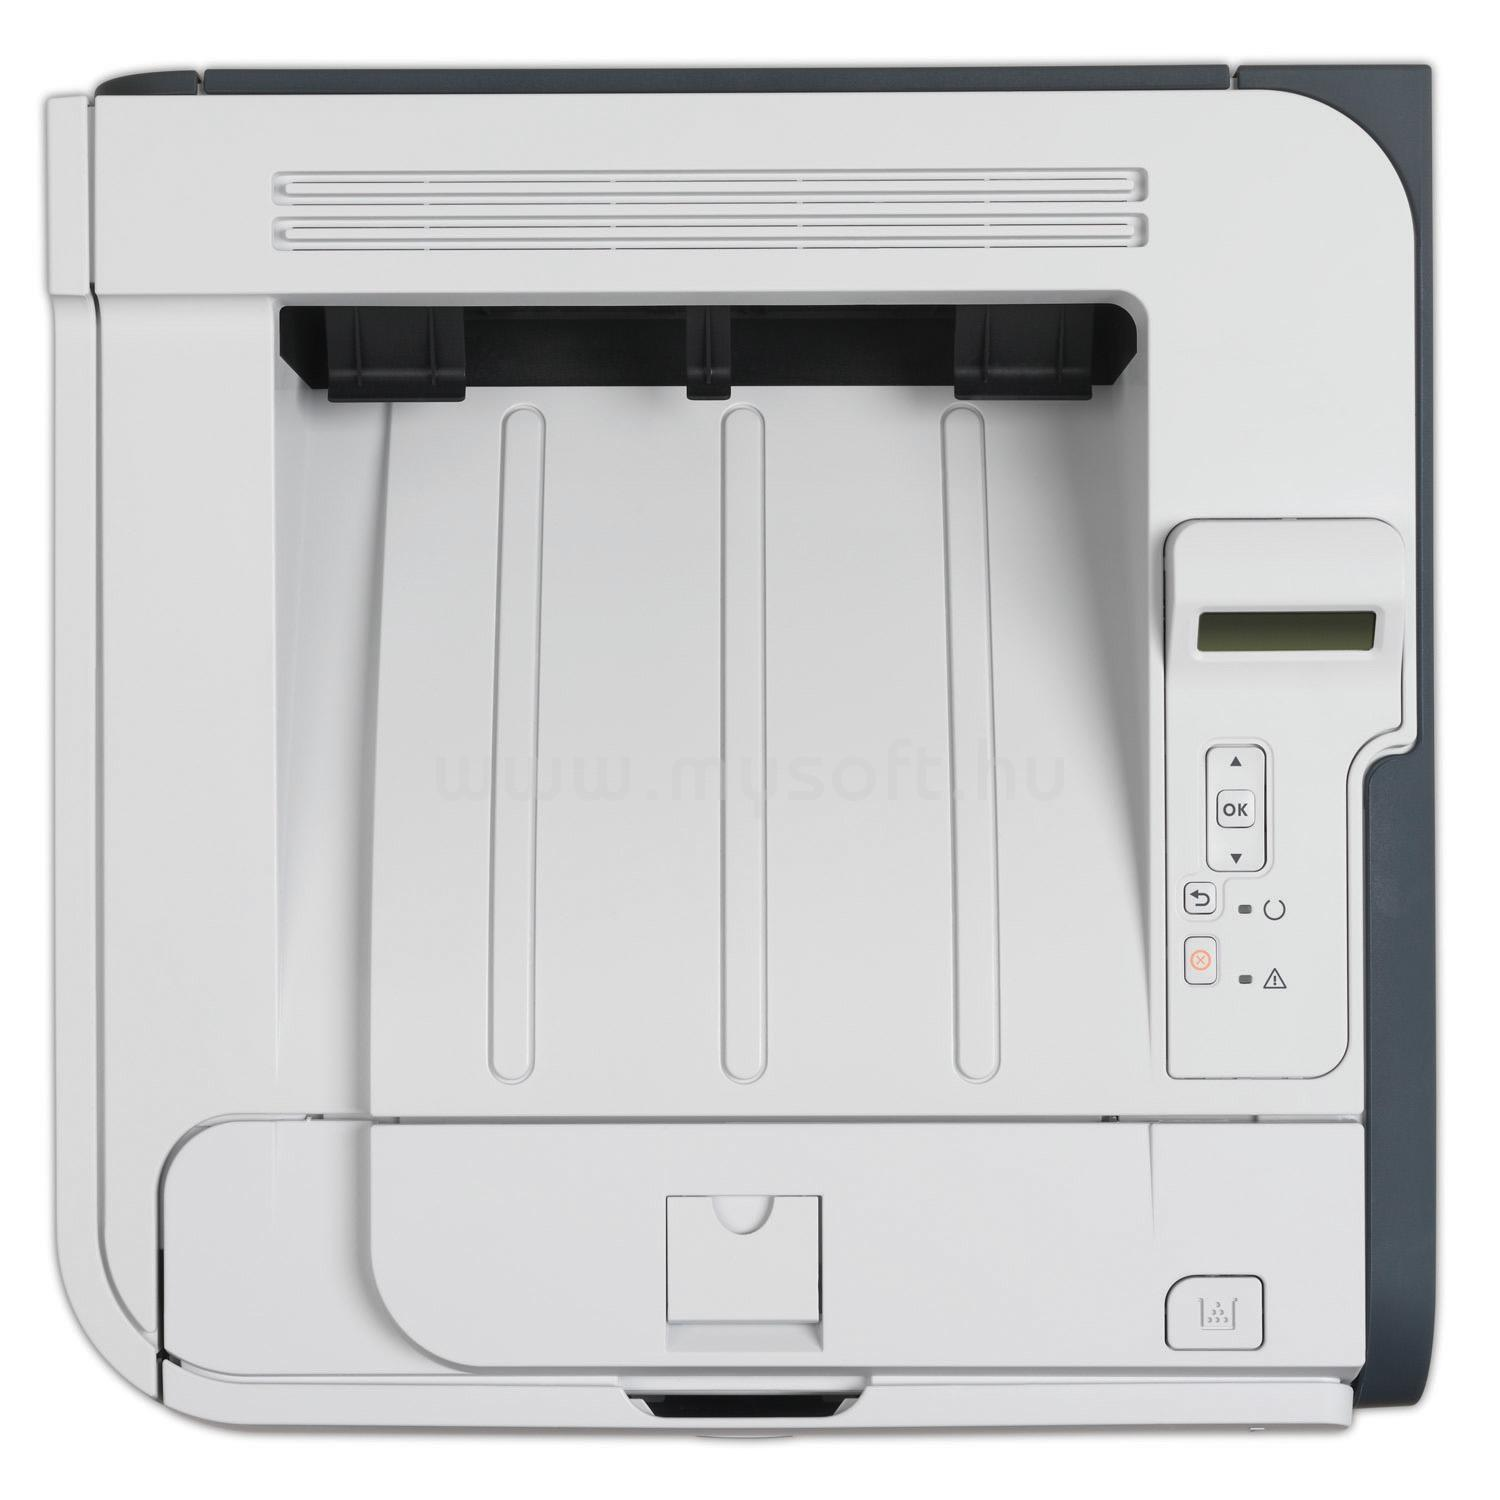 How To Install Hp Laserjet P2035 Printer In Windows 7